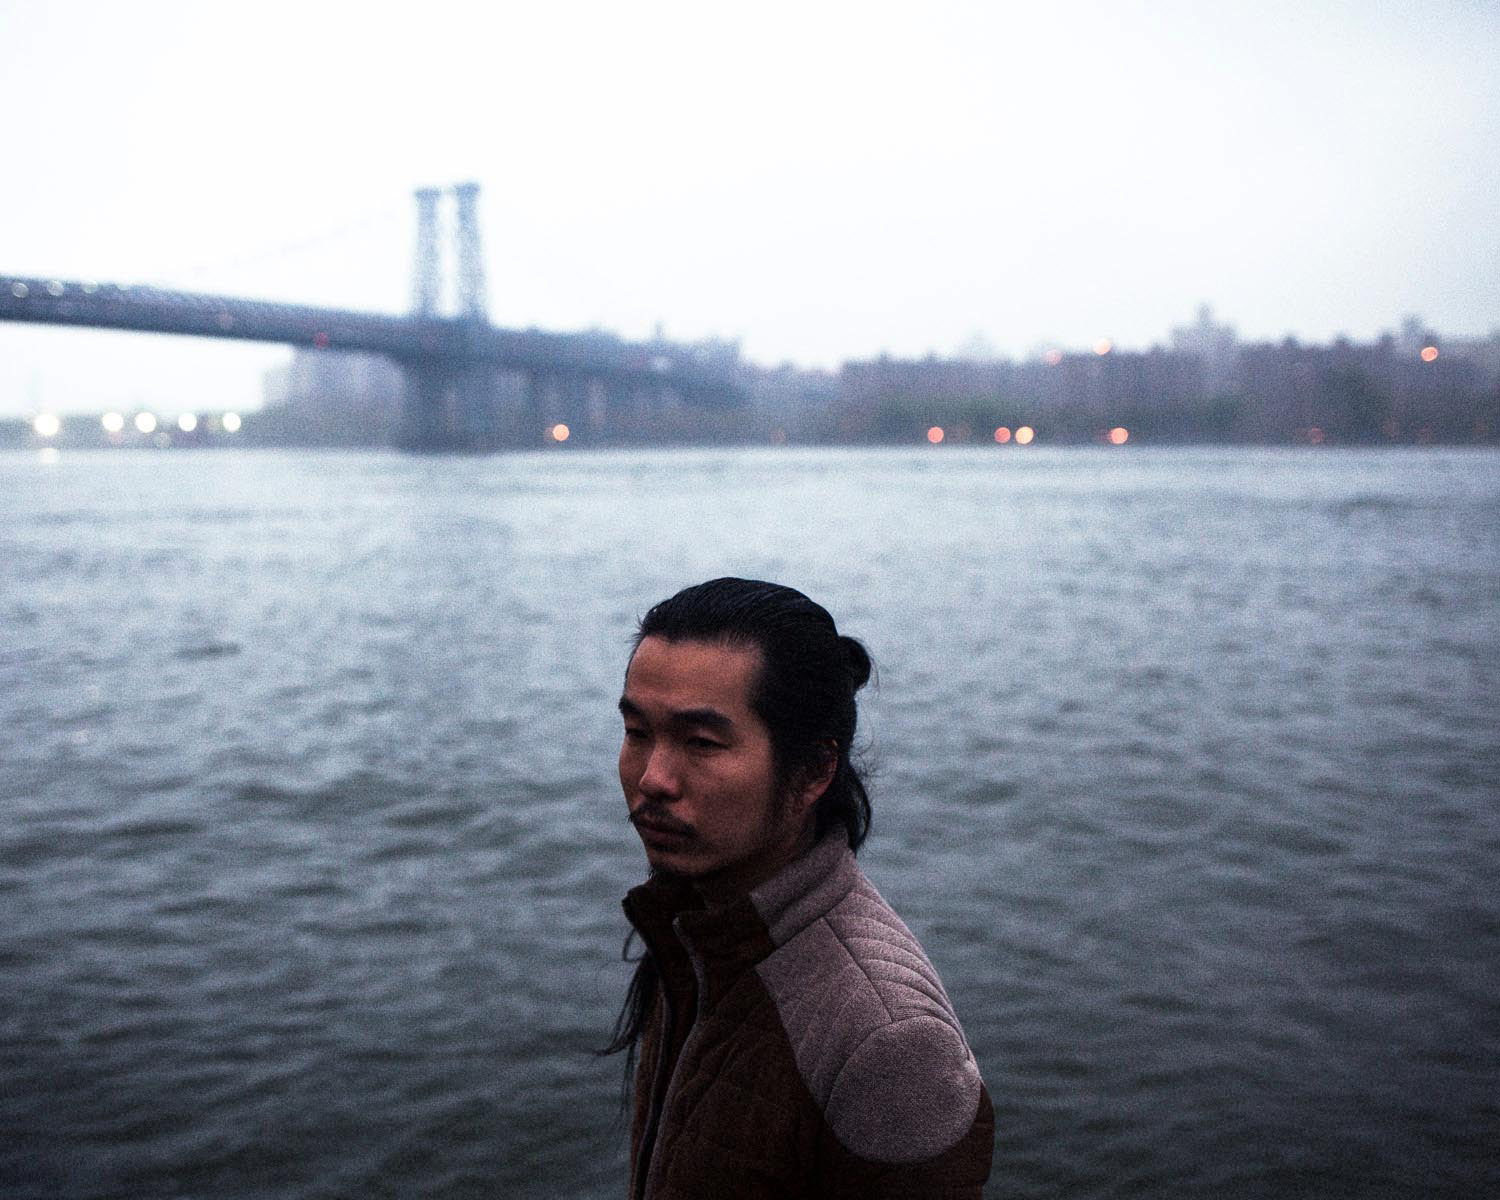 An Asian American man with a mustache and his hair in a bun stands in front of water. In the background a bridge crosses to the other side. There are buildings in the distance.